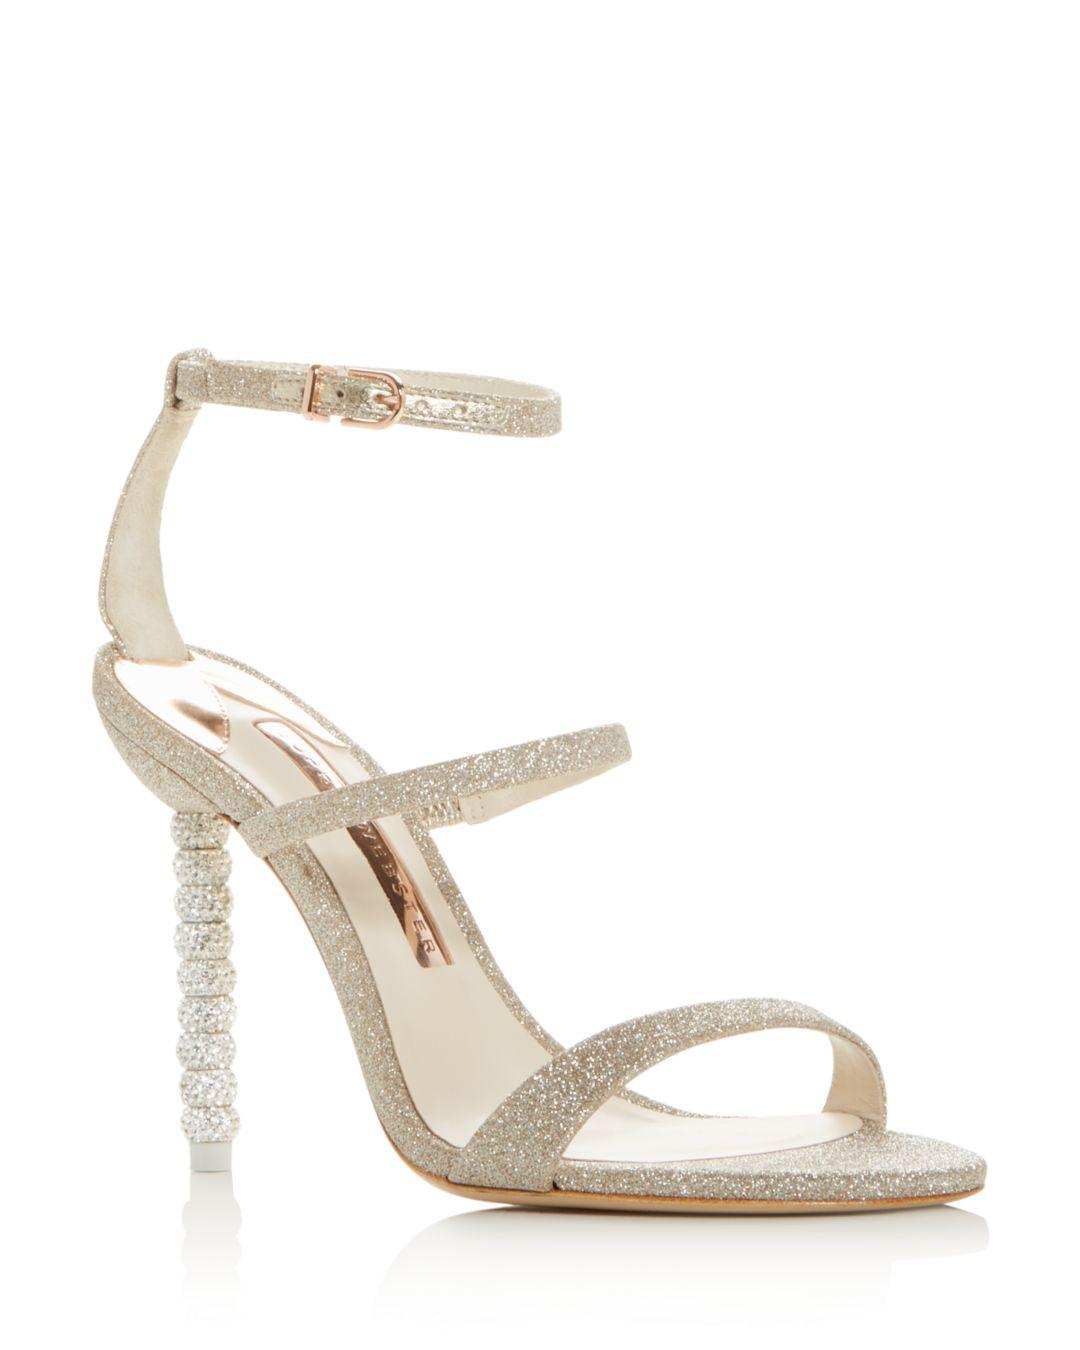 995c72715a9 sophia-webster-Champagne-Glitter-Womens-Rosalind-Embellished-High -heel-Sandals.jpeg